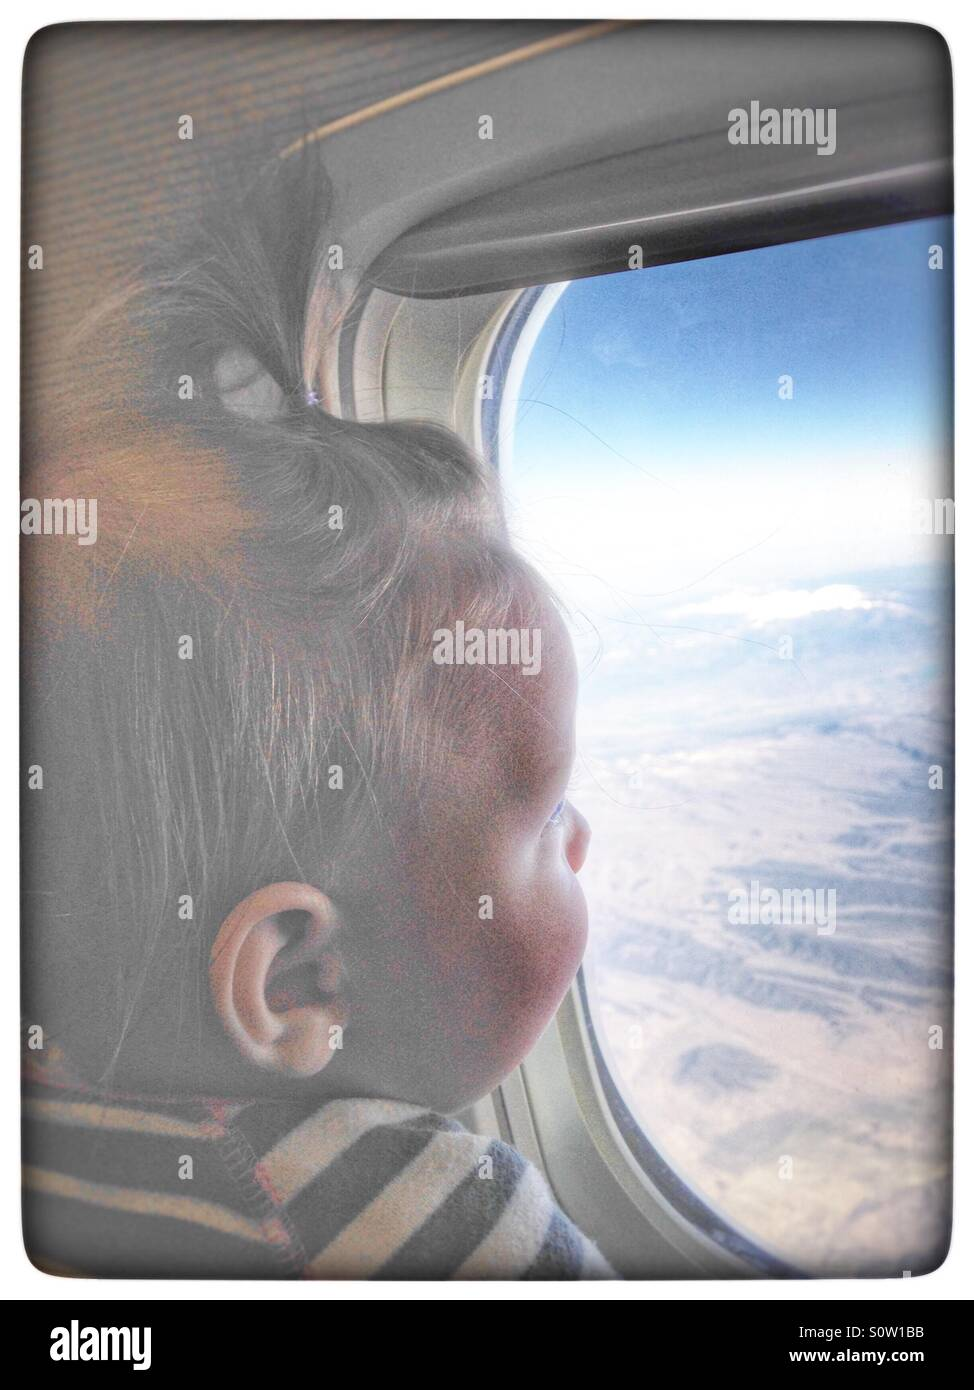 Baby looking out an airplane window - Stock Image